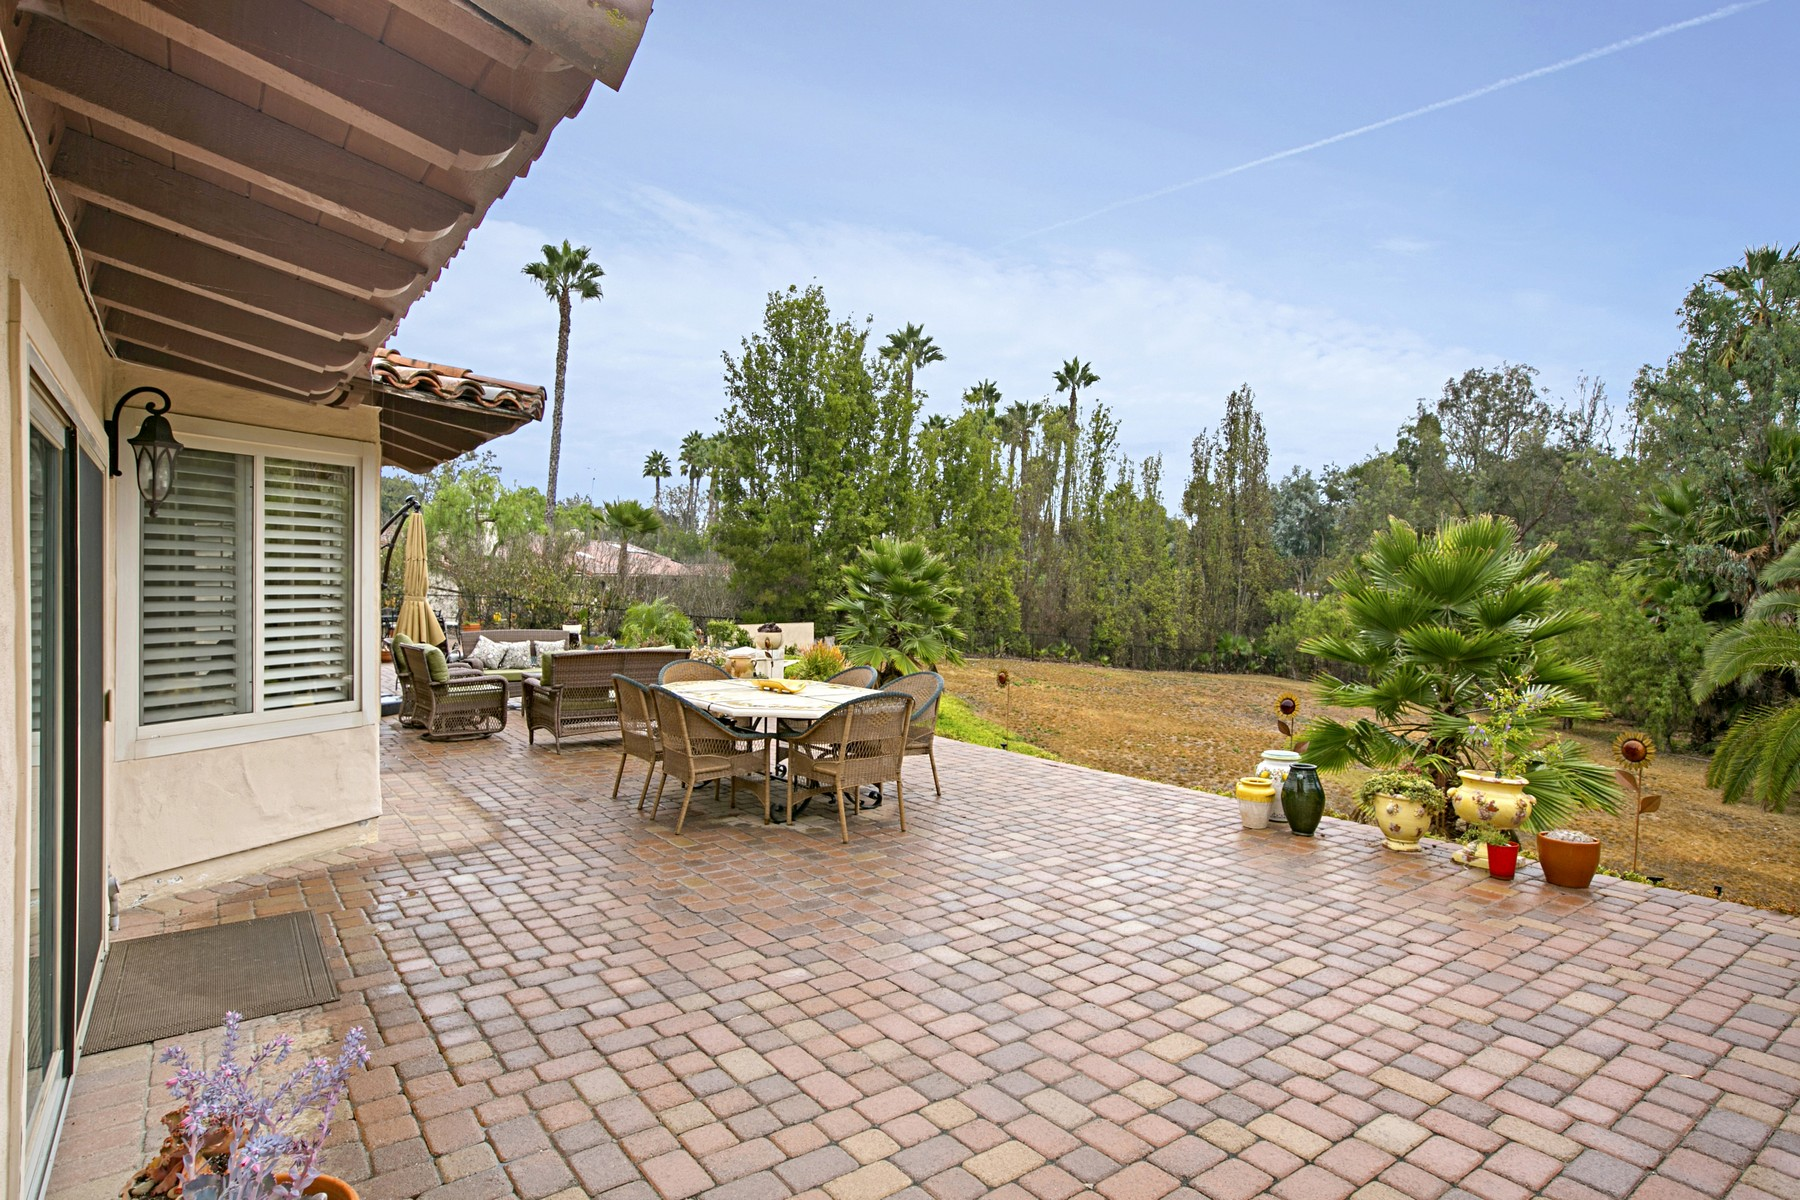 Additional photo for property listing at 17530 Luna De Miel  Rancho Santa Fe, California 92067 Estados Unidos